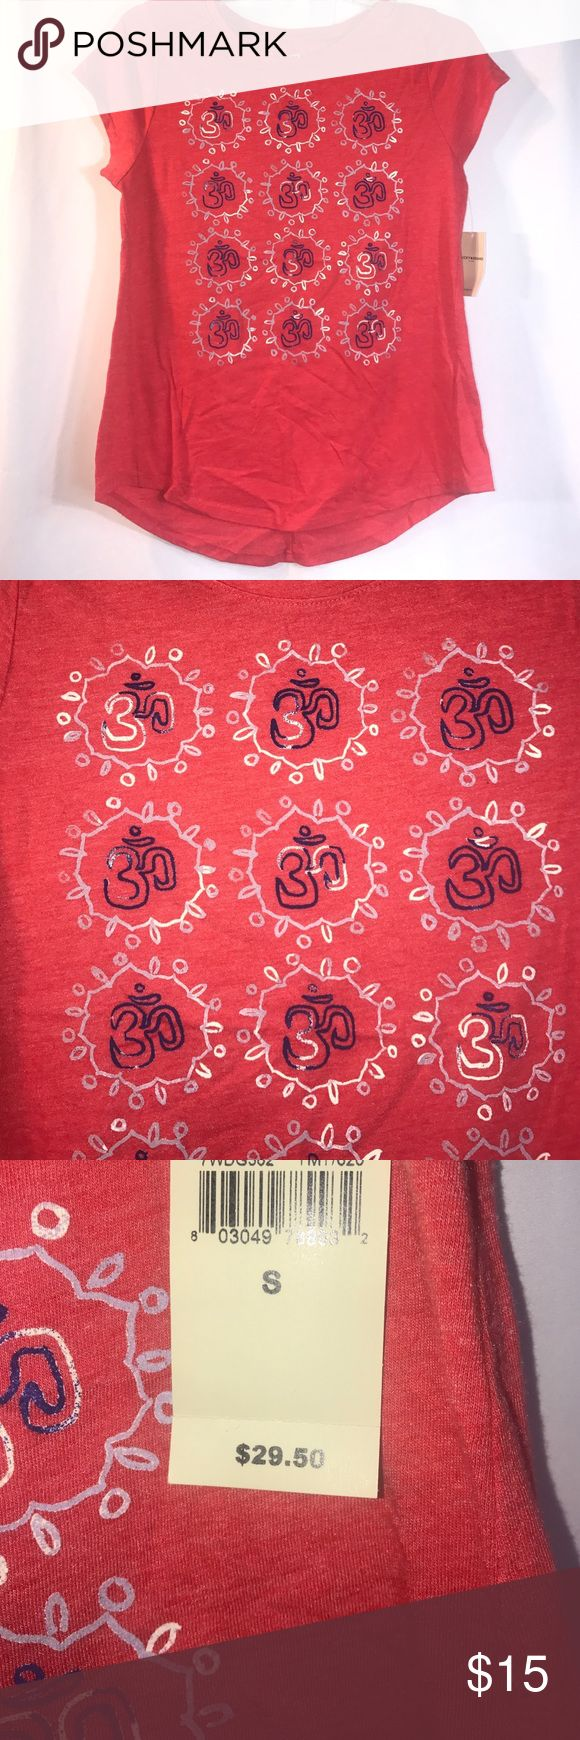 🍀 lucky 🍀 brand t-shirt nwt Soft and cozy Lucky Brand T-shirt Lucky Brand Tops Tees - Short Sleeve